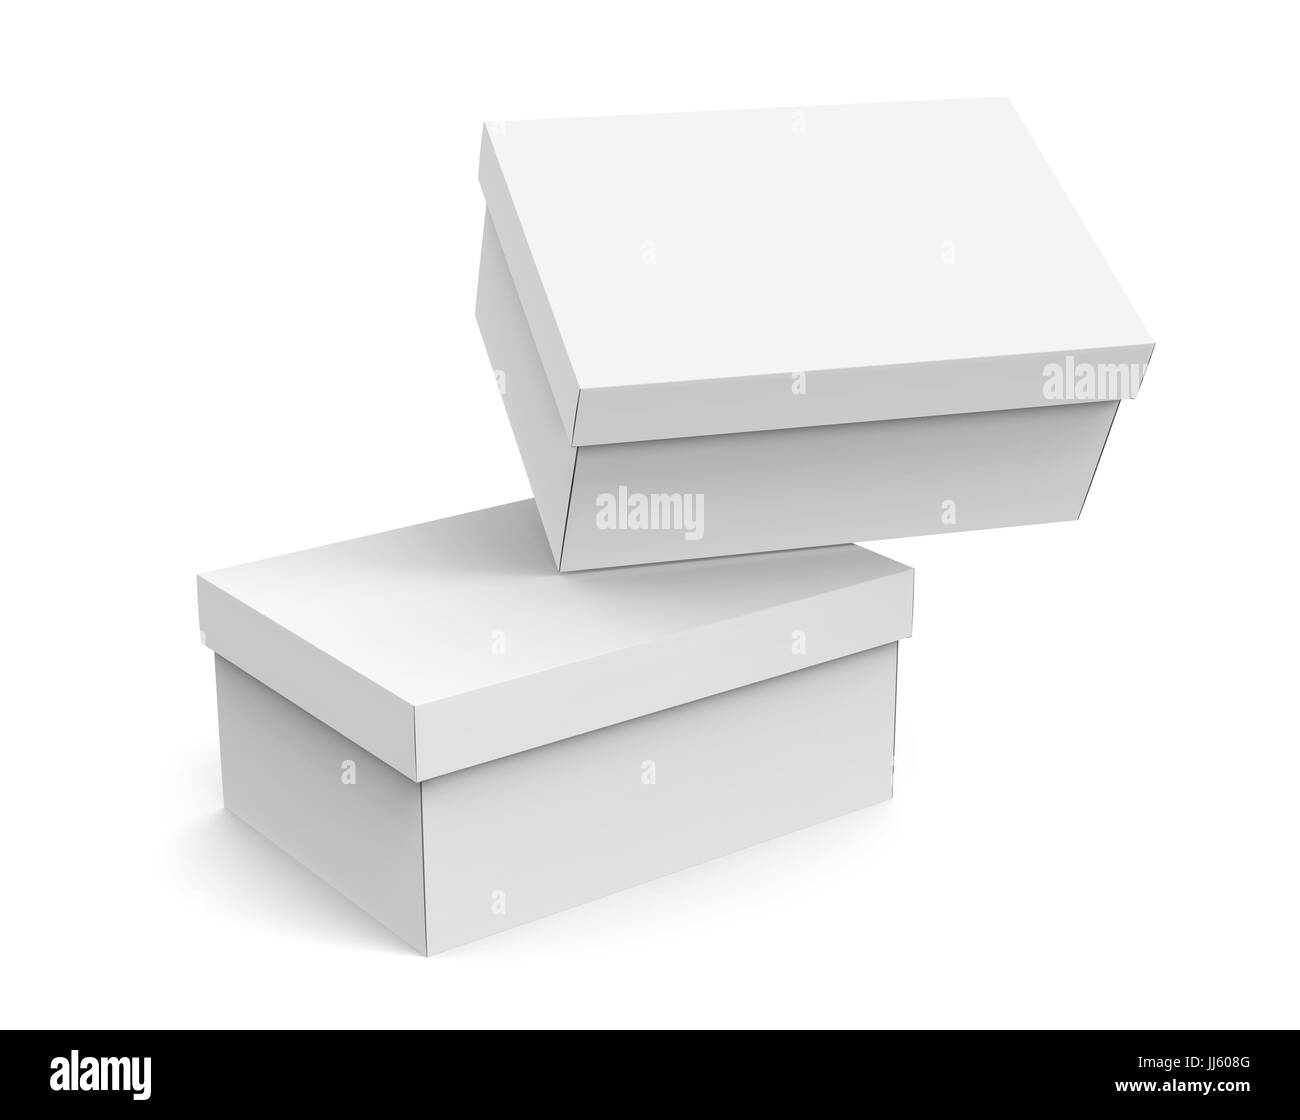 Blank Paper Box Template Two Boxes Mockup With Lid In 3d Rendering One Floating The Air